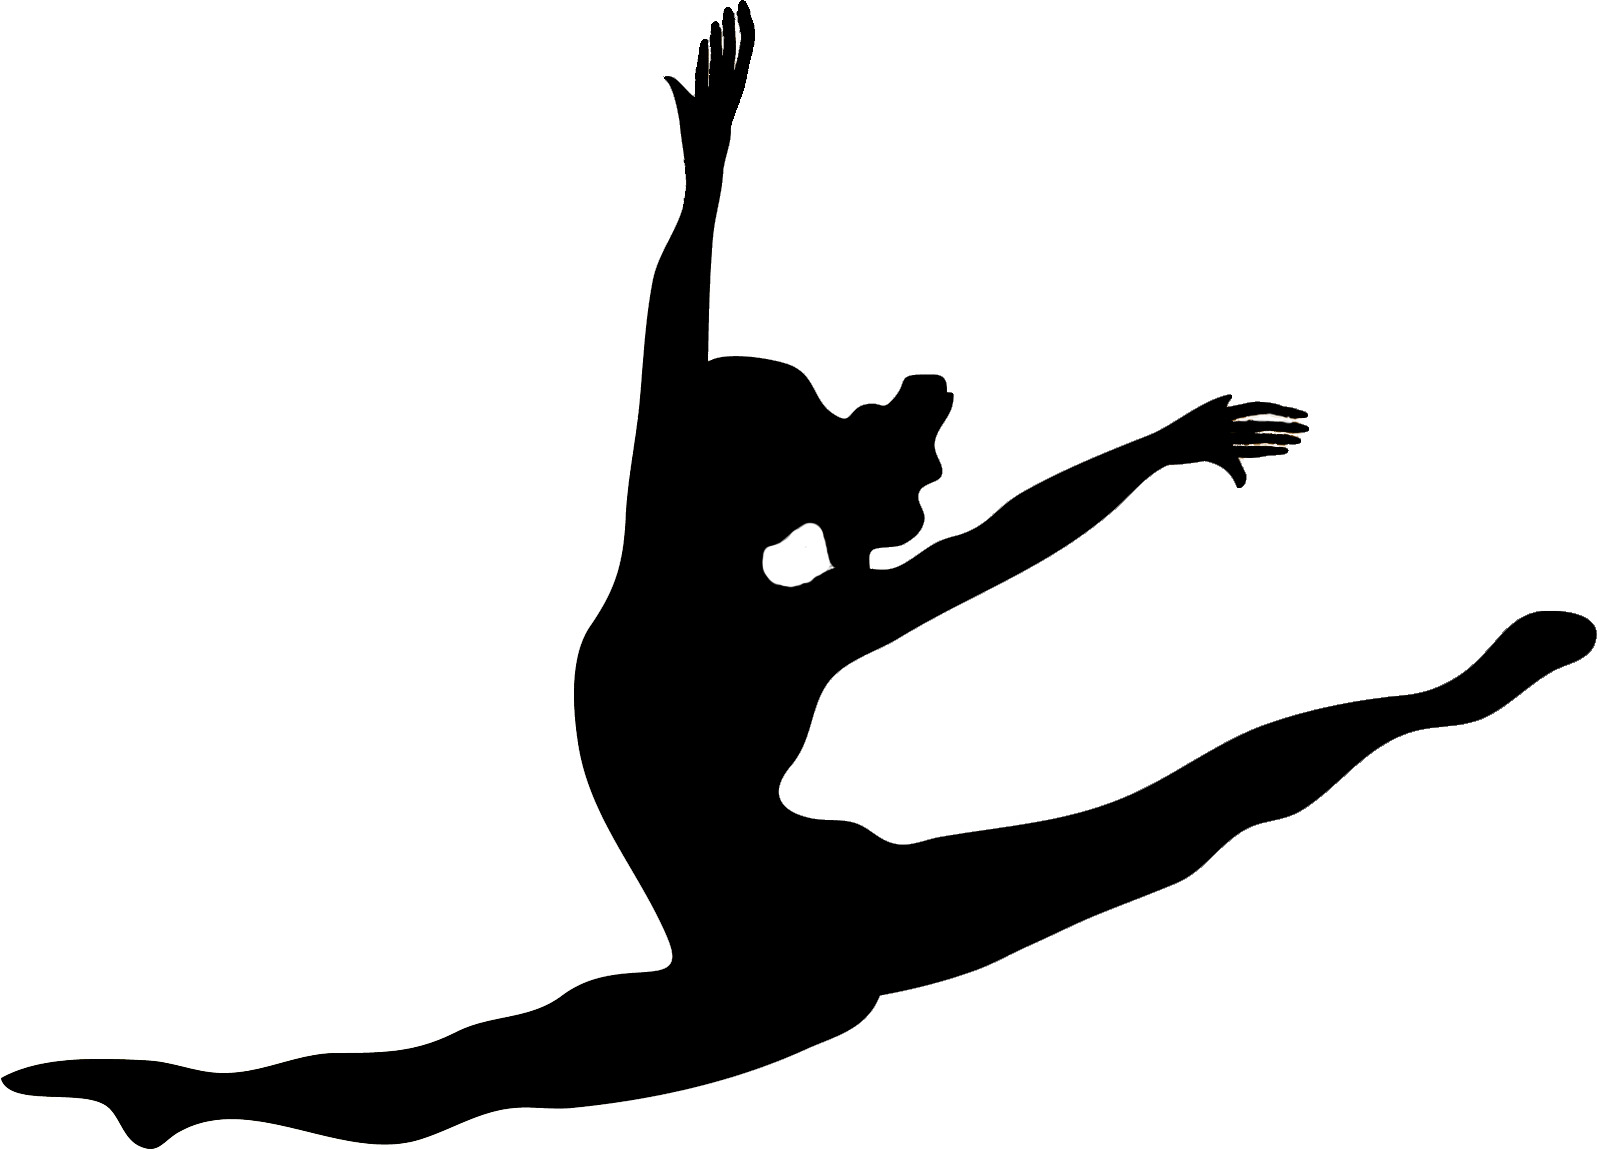 Dance clipart #5, Download drawings